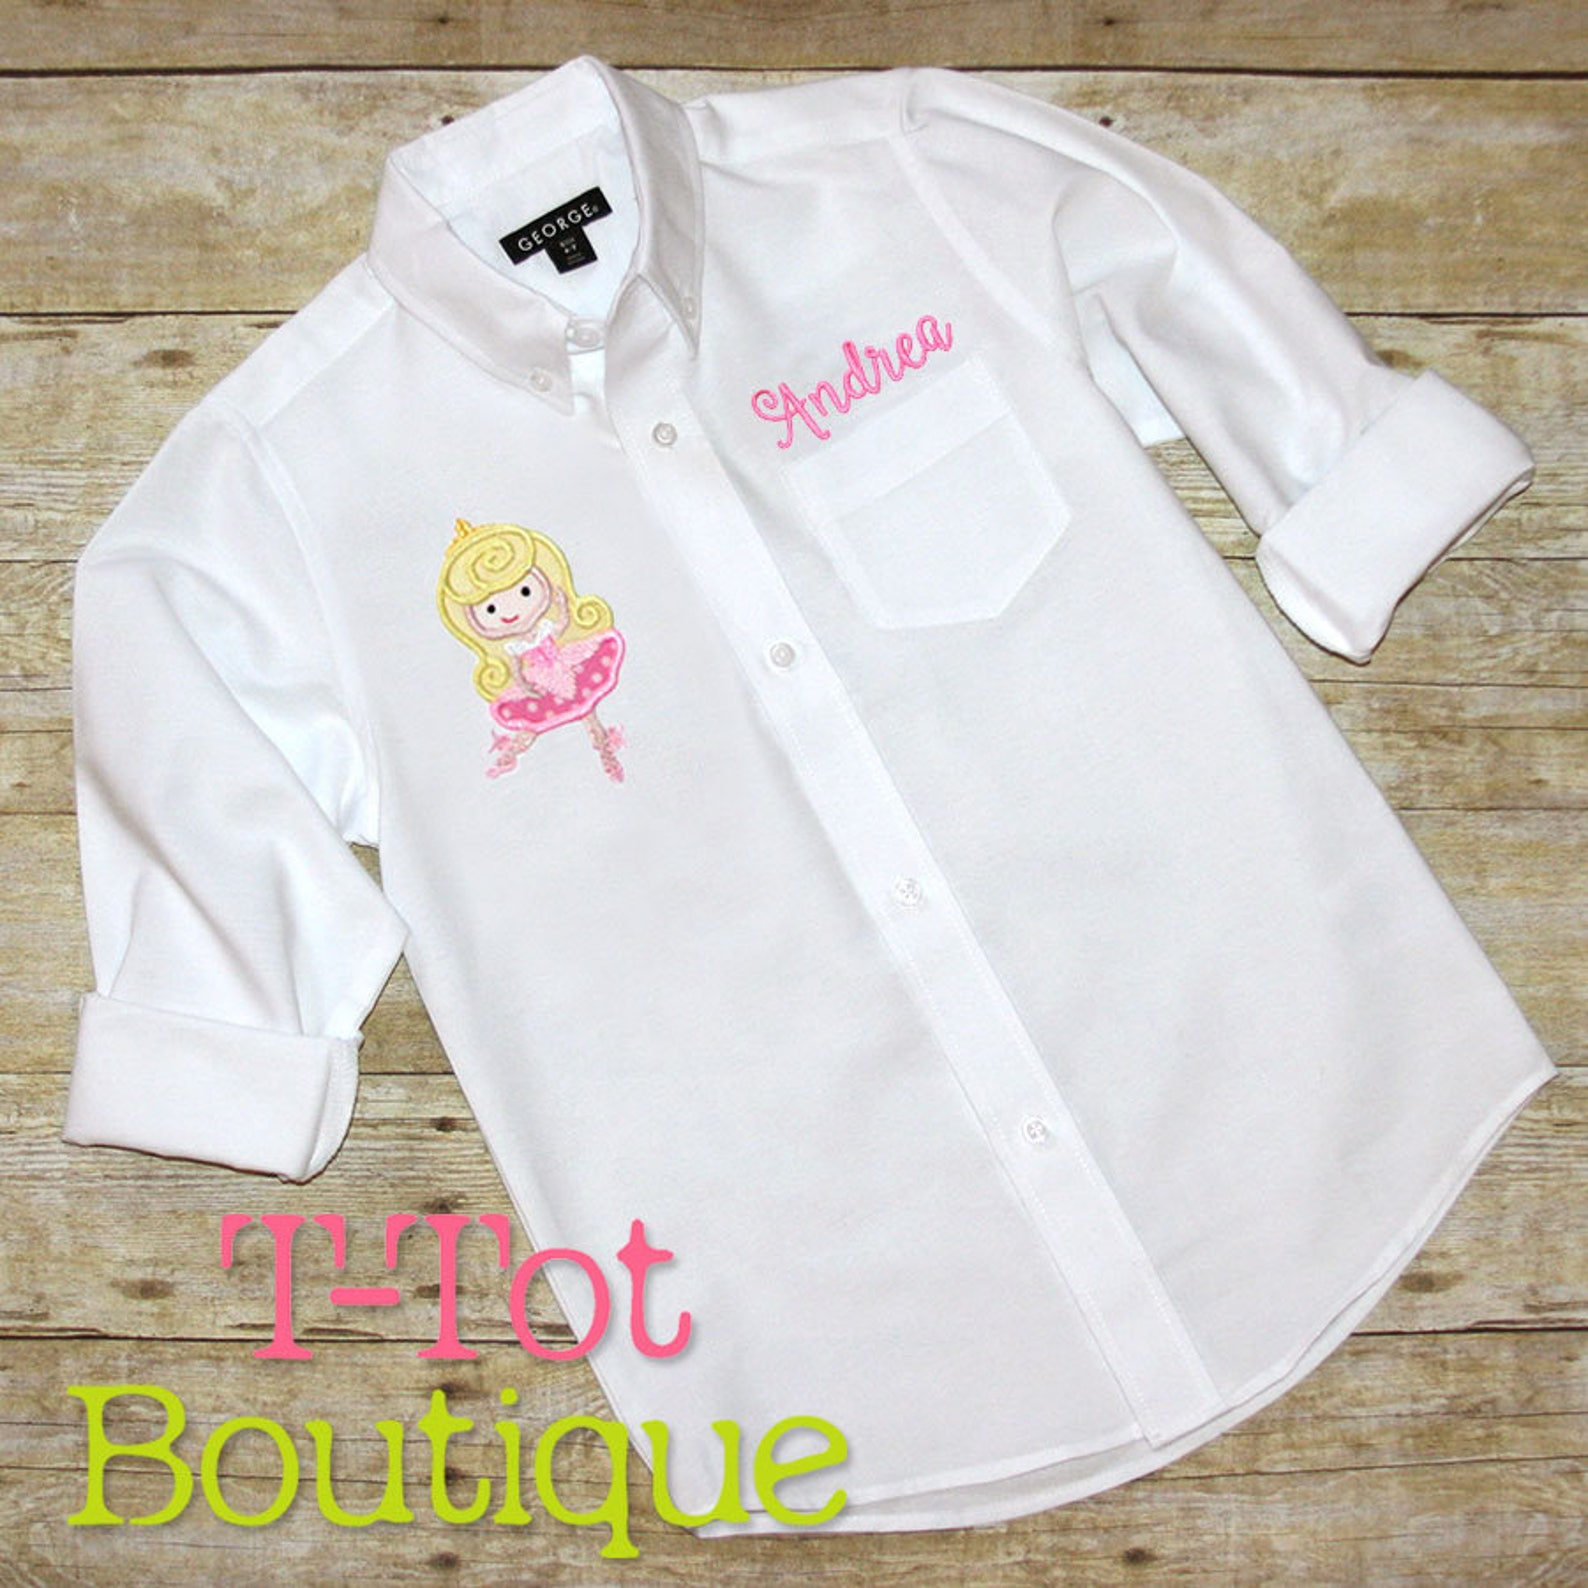 pick your princess dance recital cover up oversized monogram button up shirt - dance revue review gift ballet slippers over size